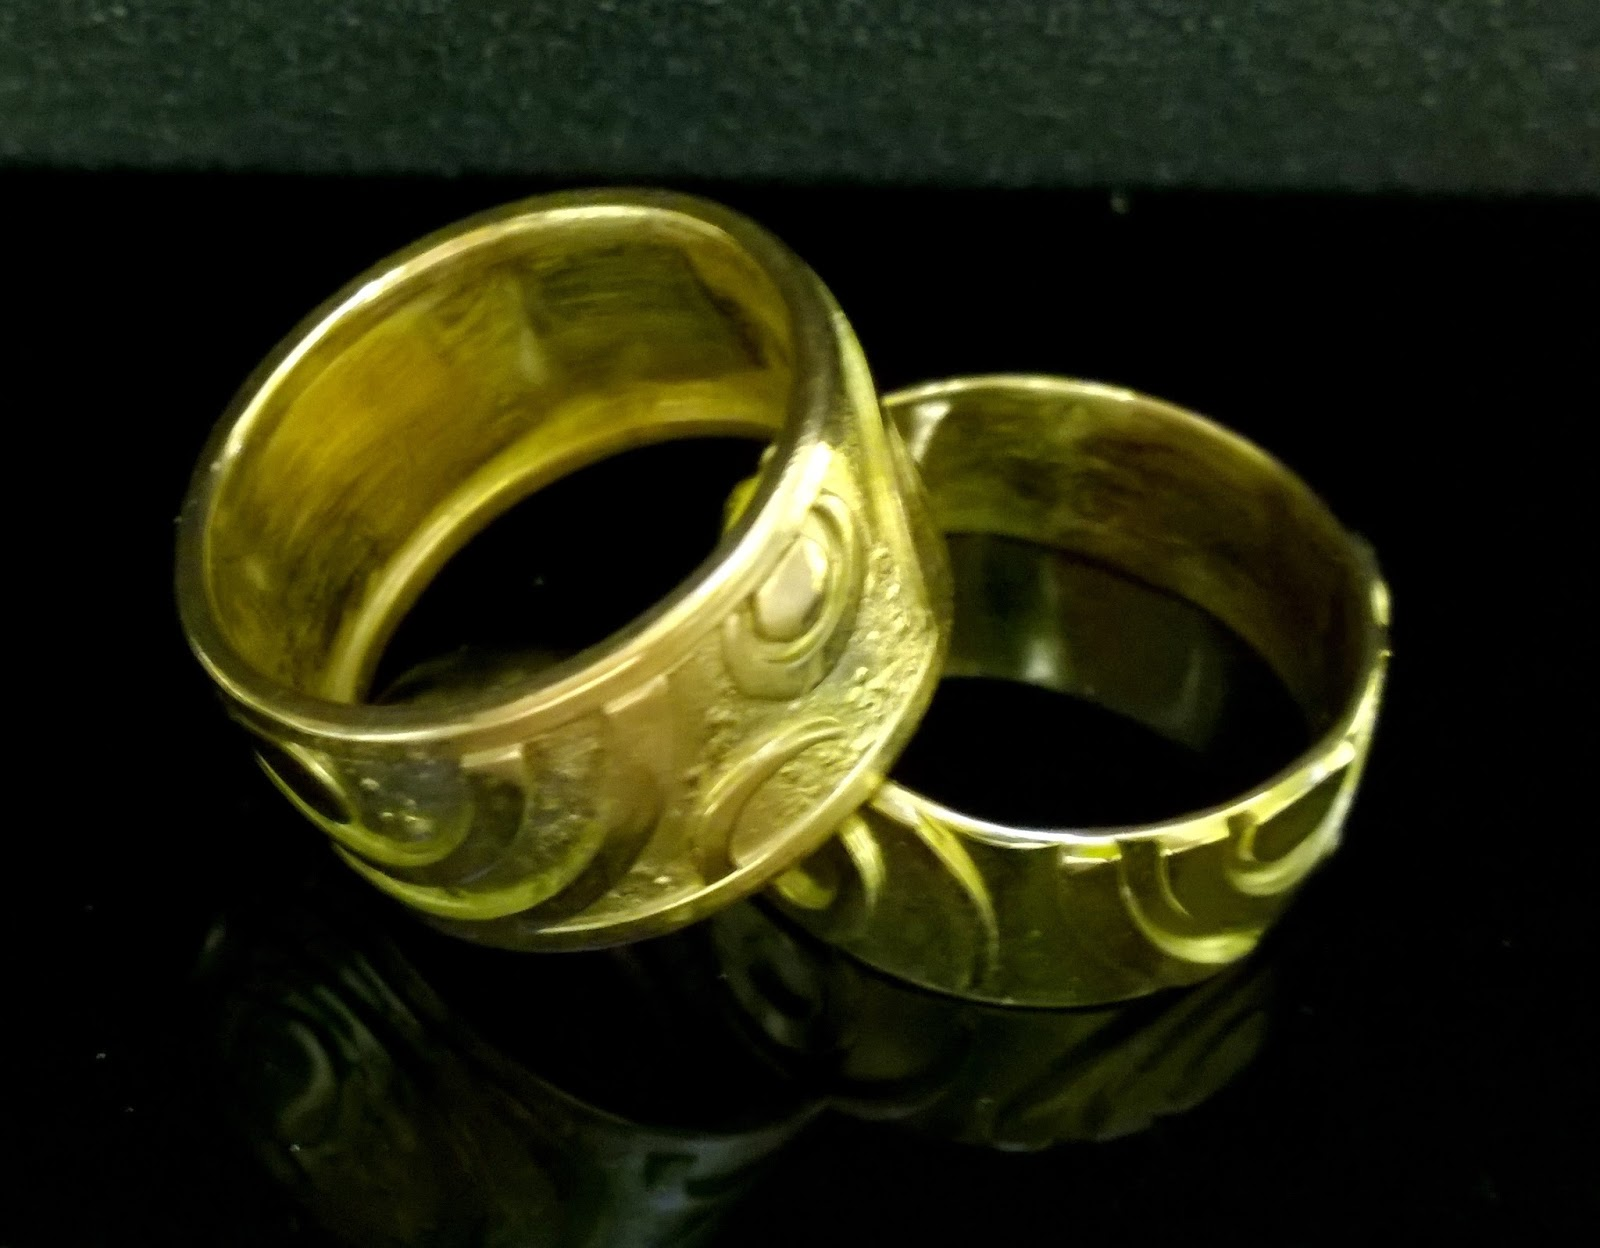 my gold john highres saints more wp a of favorite are rings in design scorpio few pro here